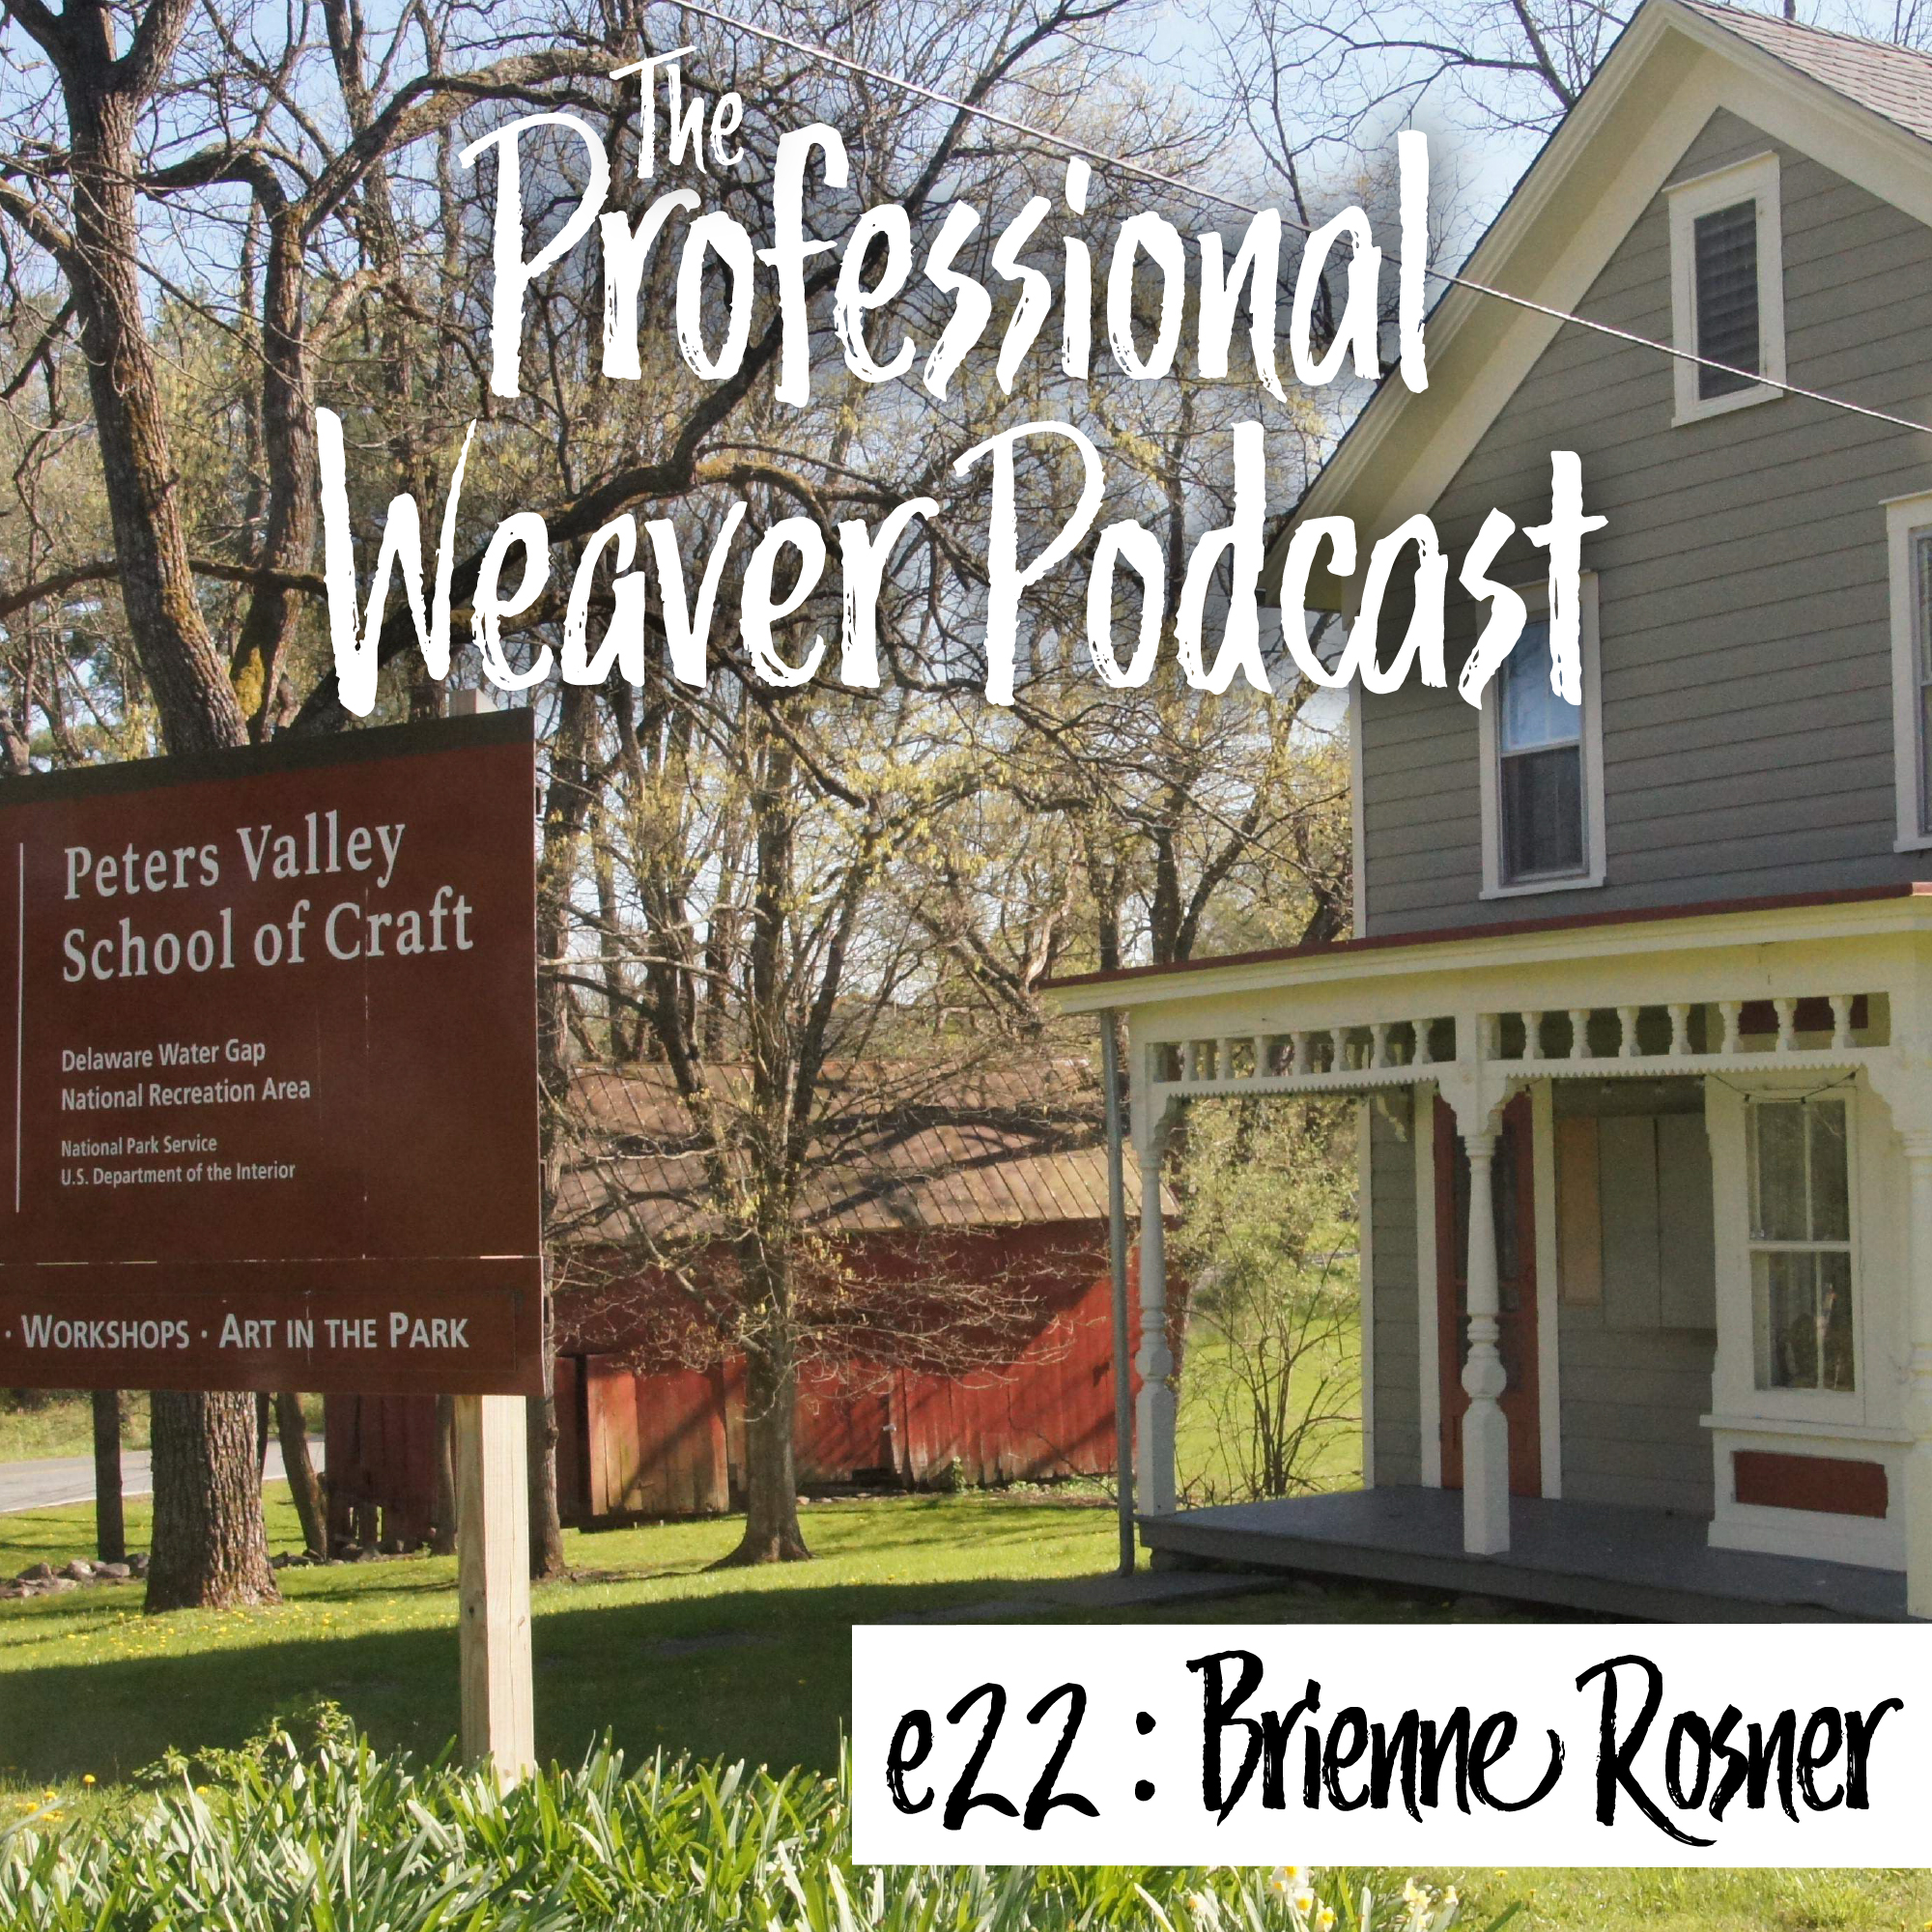 Episode 22 : Brienne Rosner